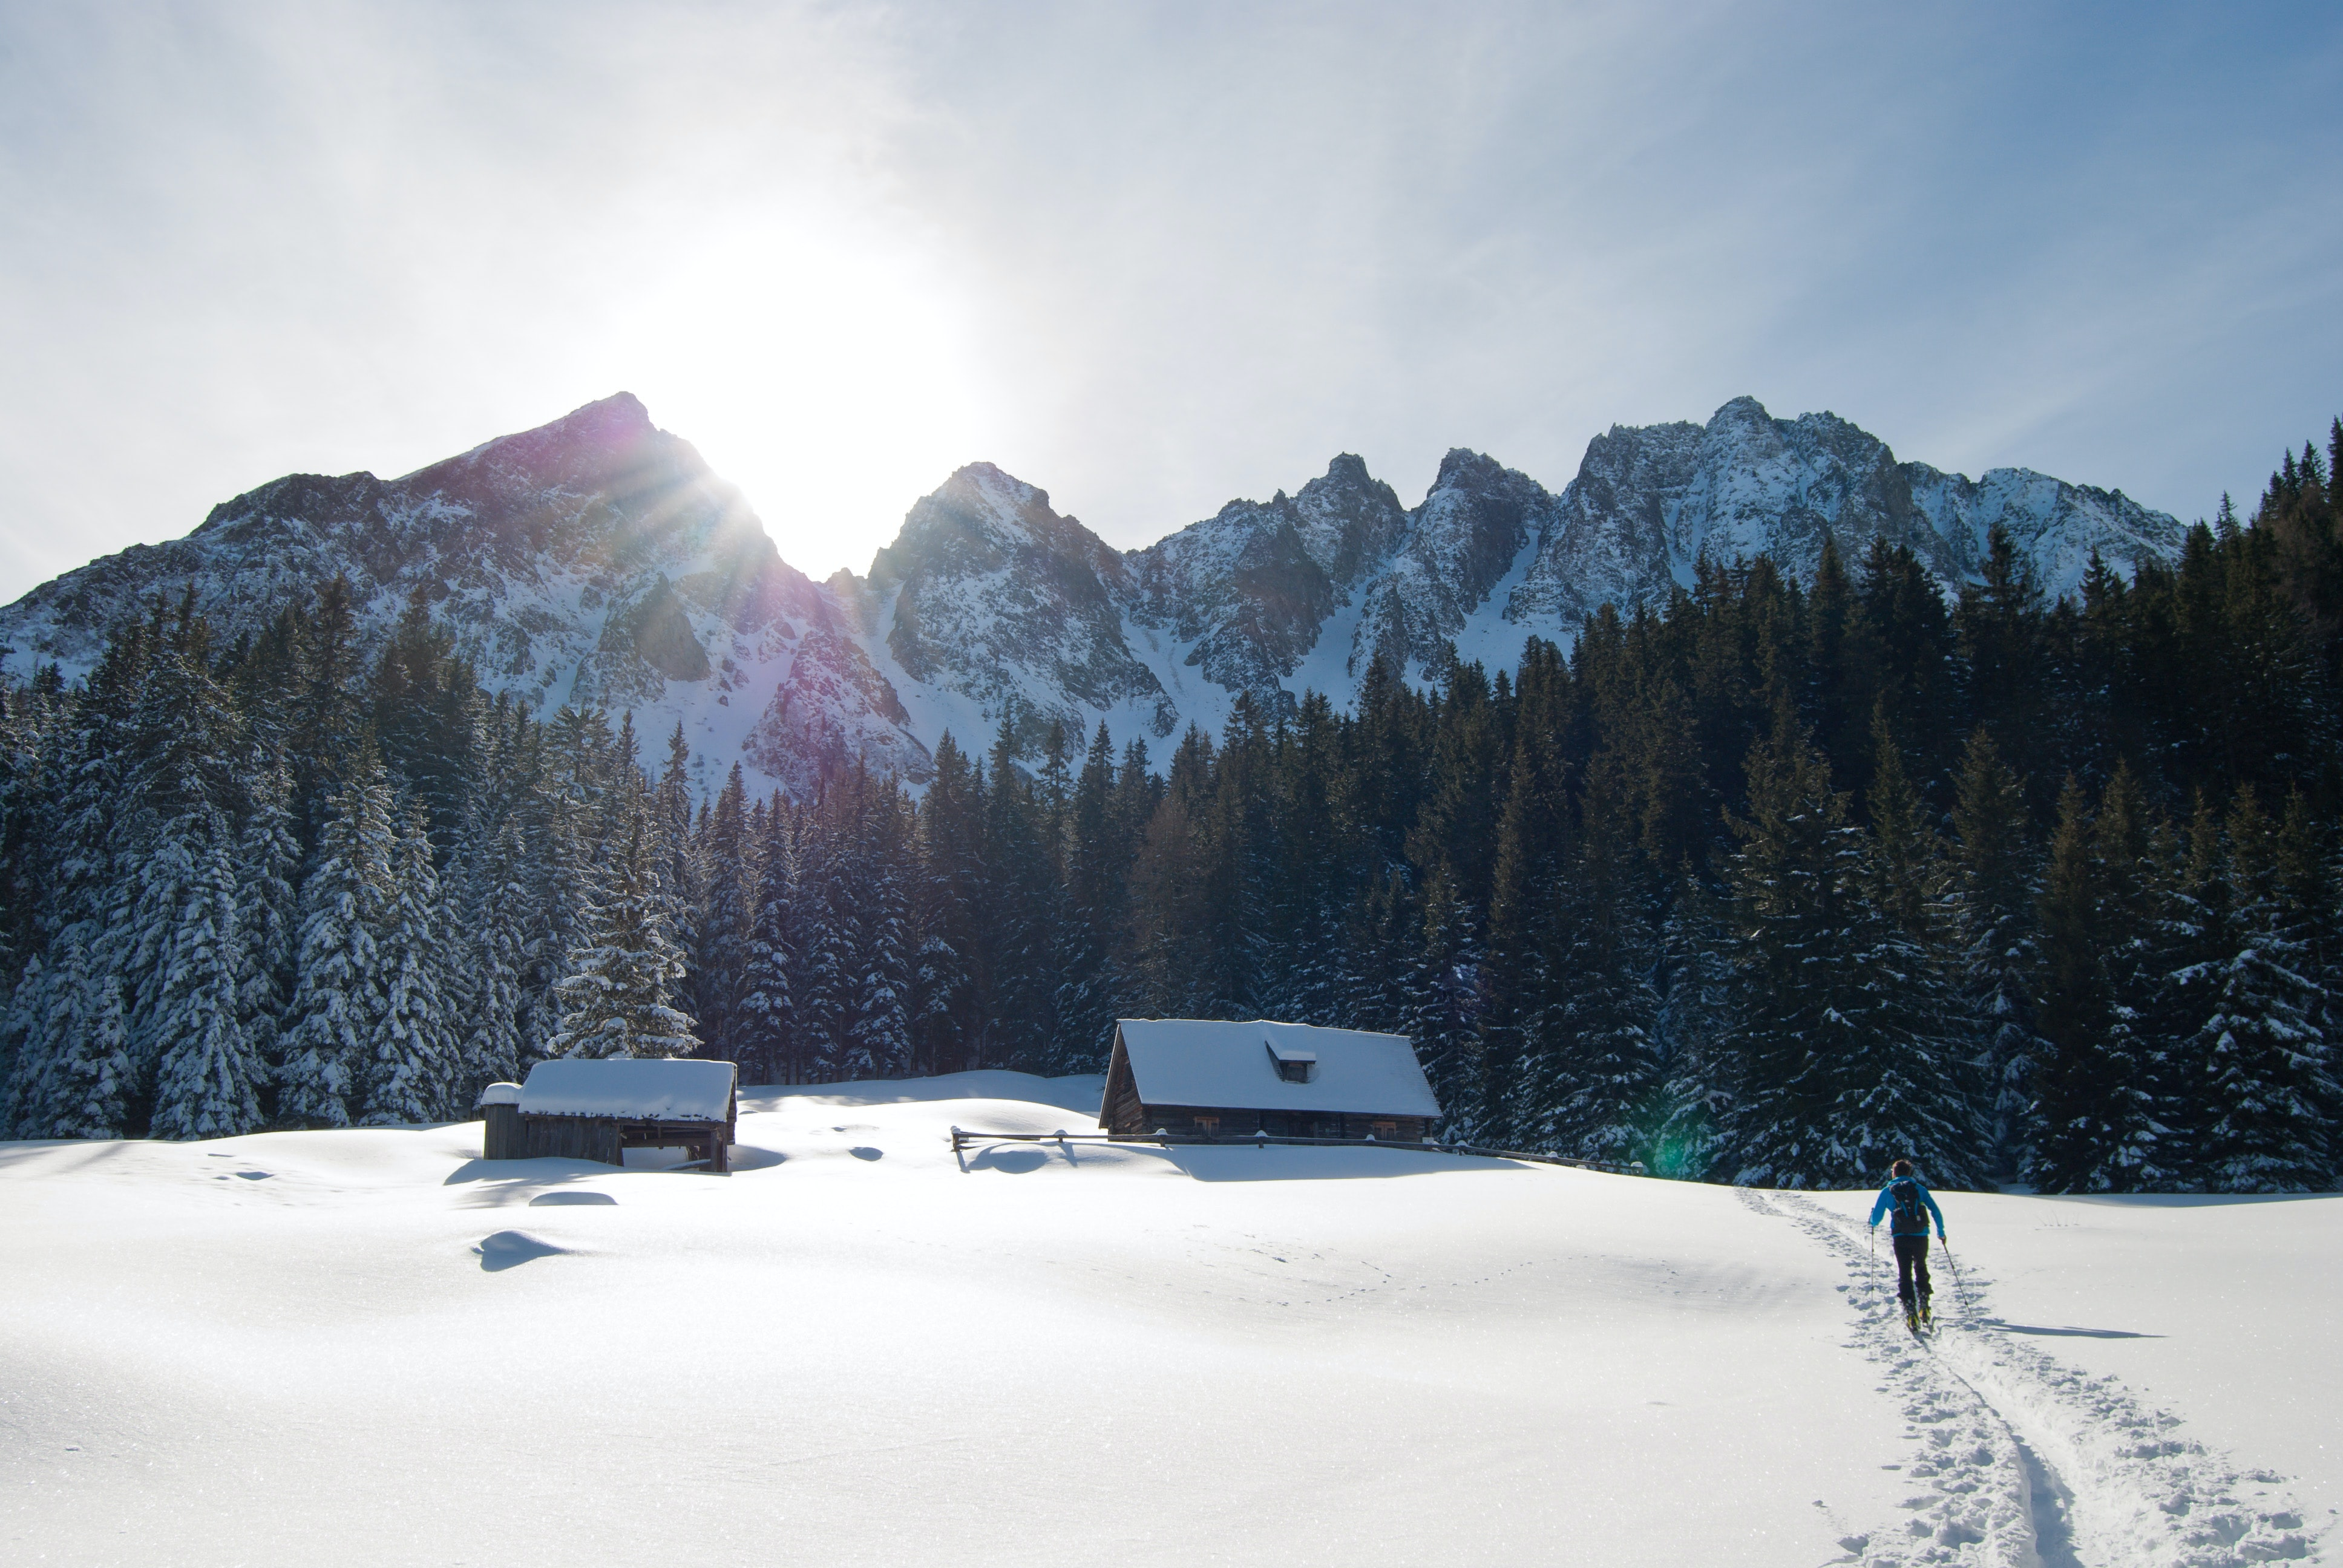 A person walking in the snow to a house near sunny the mountain peaks